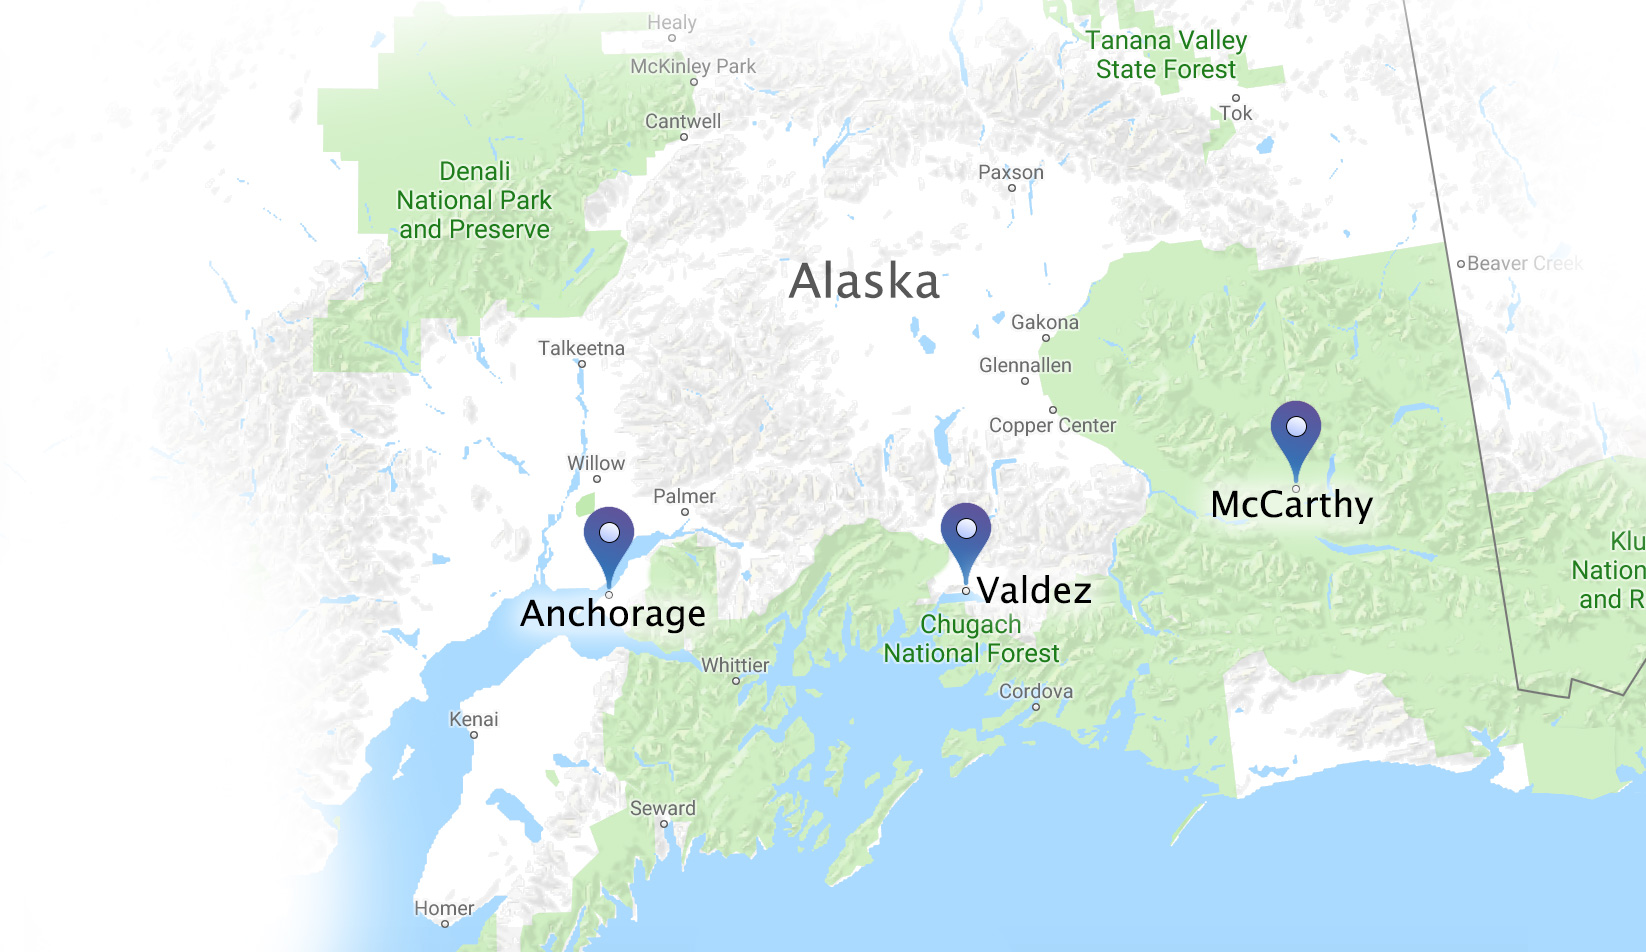 locations of aurora cams in alaska including Valdez, Anchorage and McCarthy